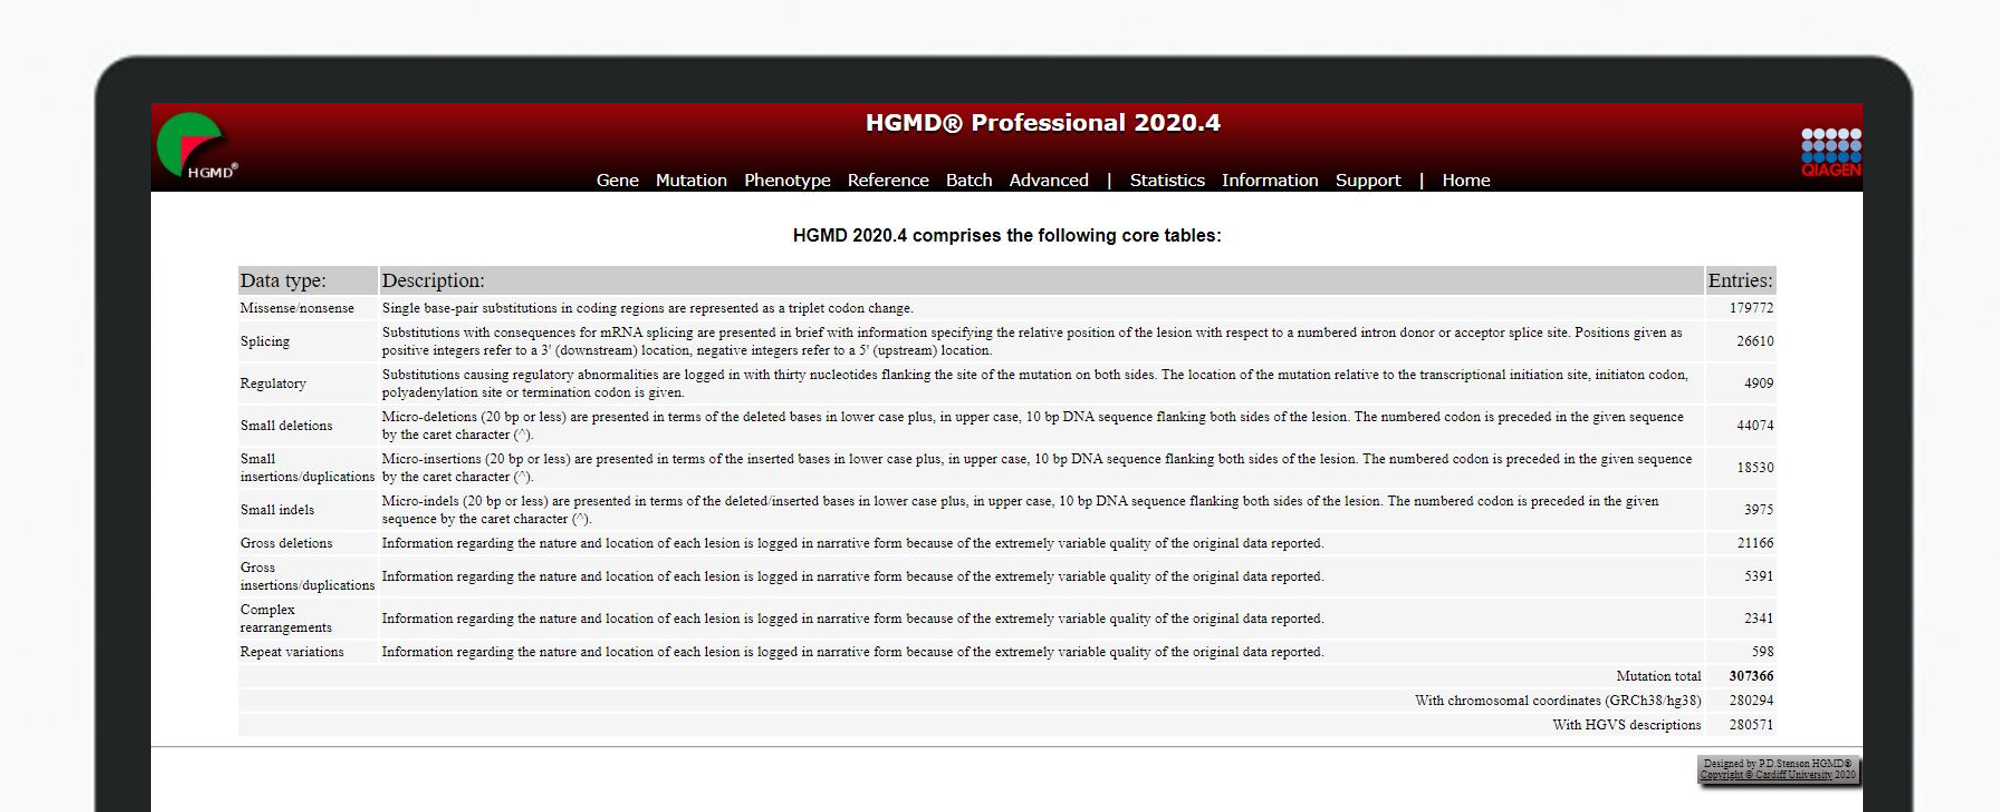 HGMD Professional 2020.4 Release